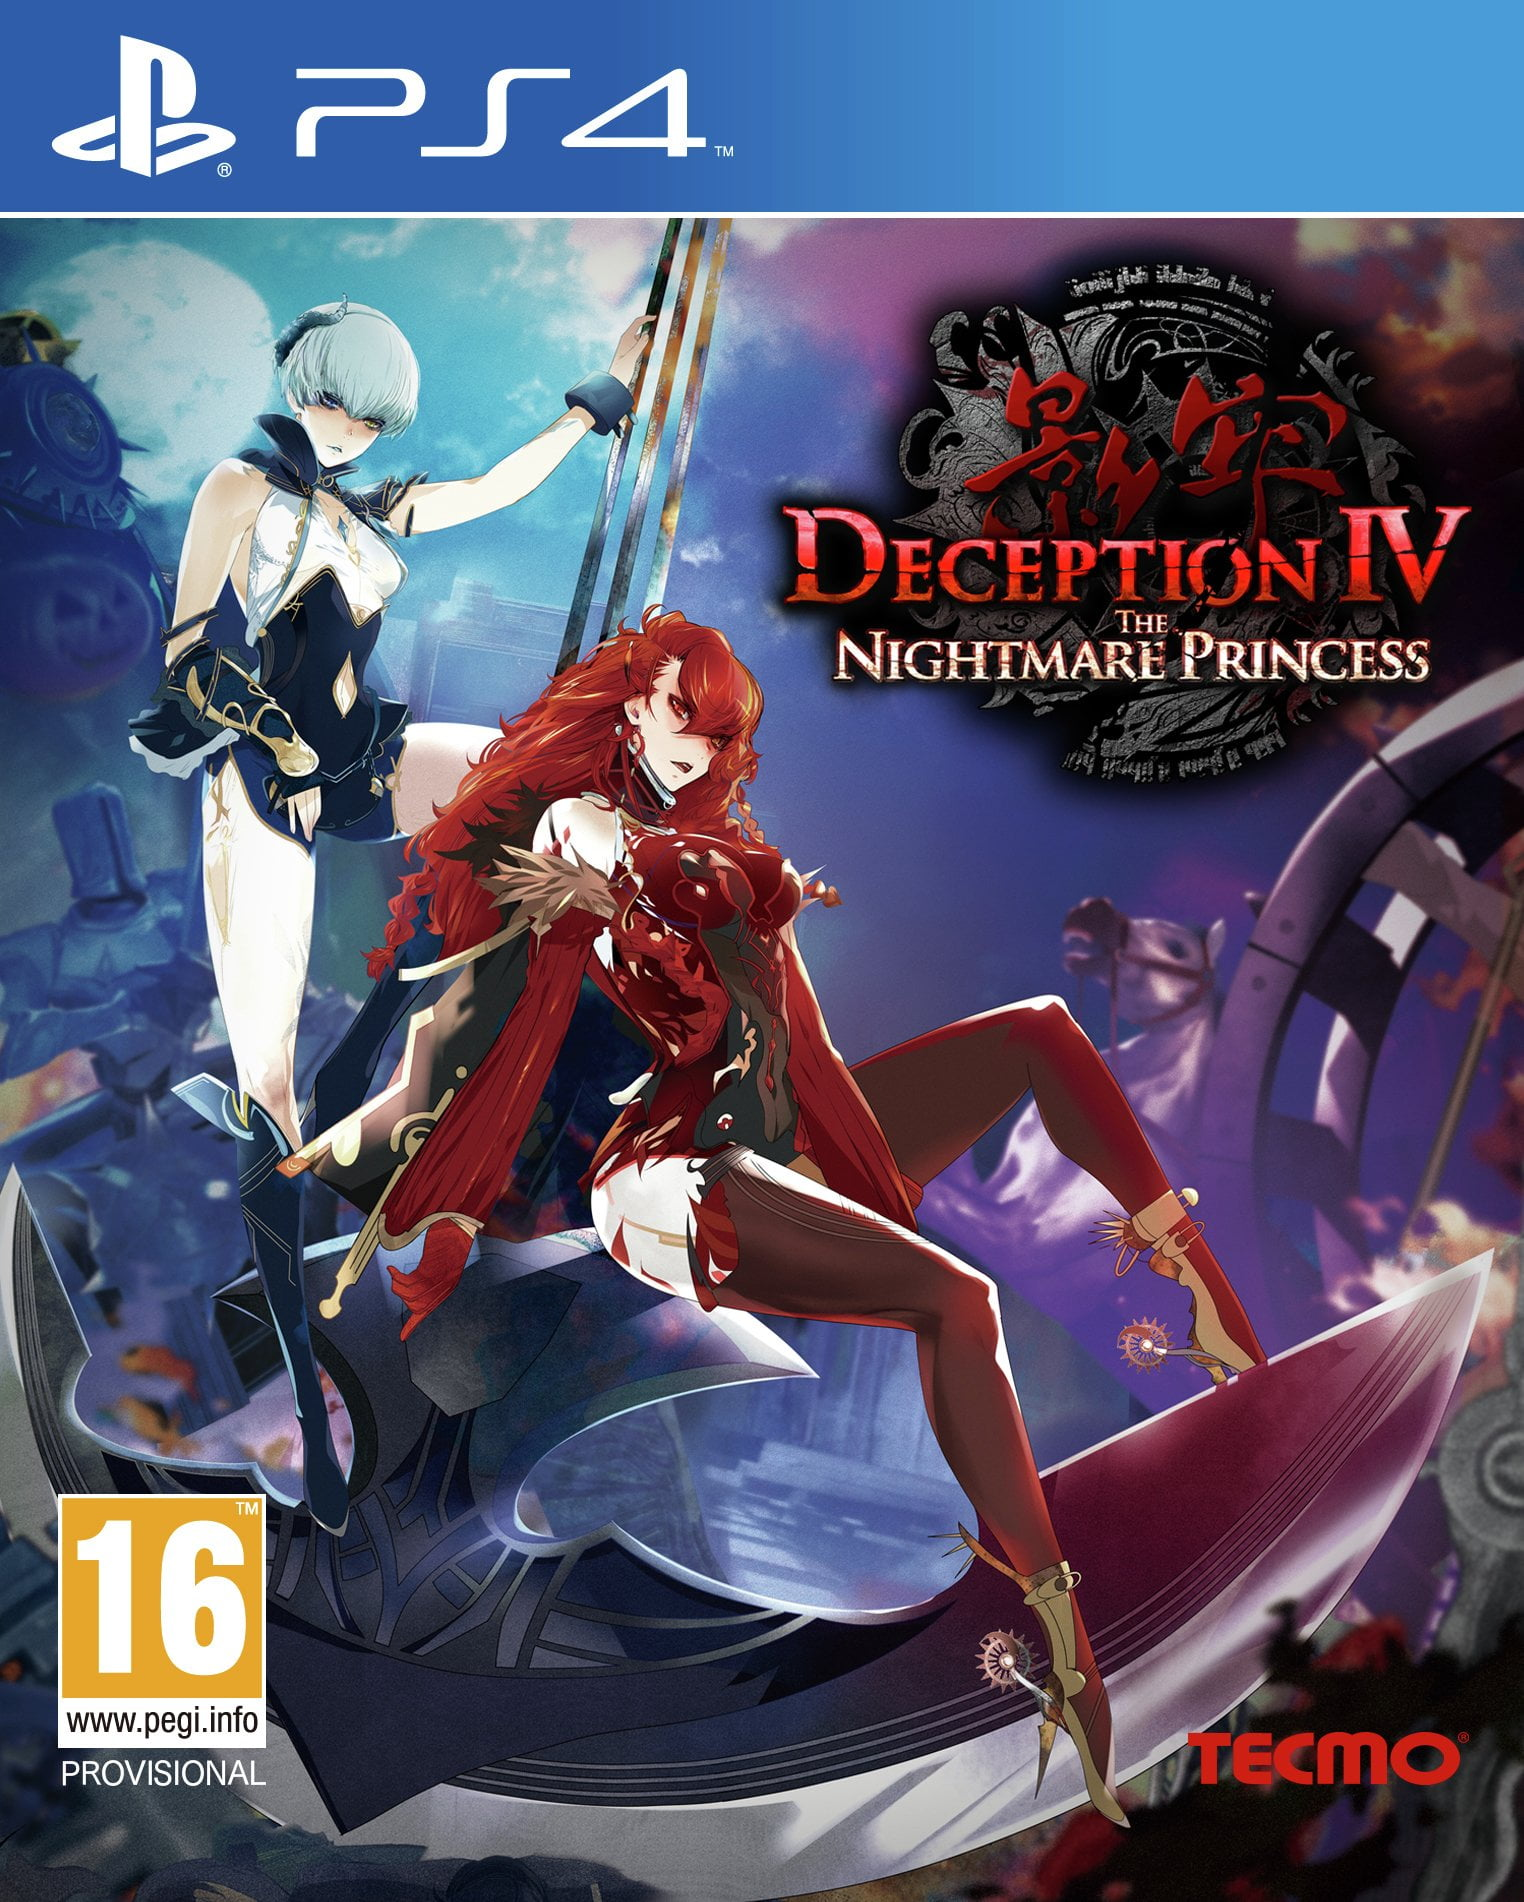 Deception IV PS4 Game.